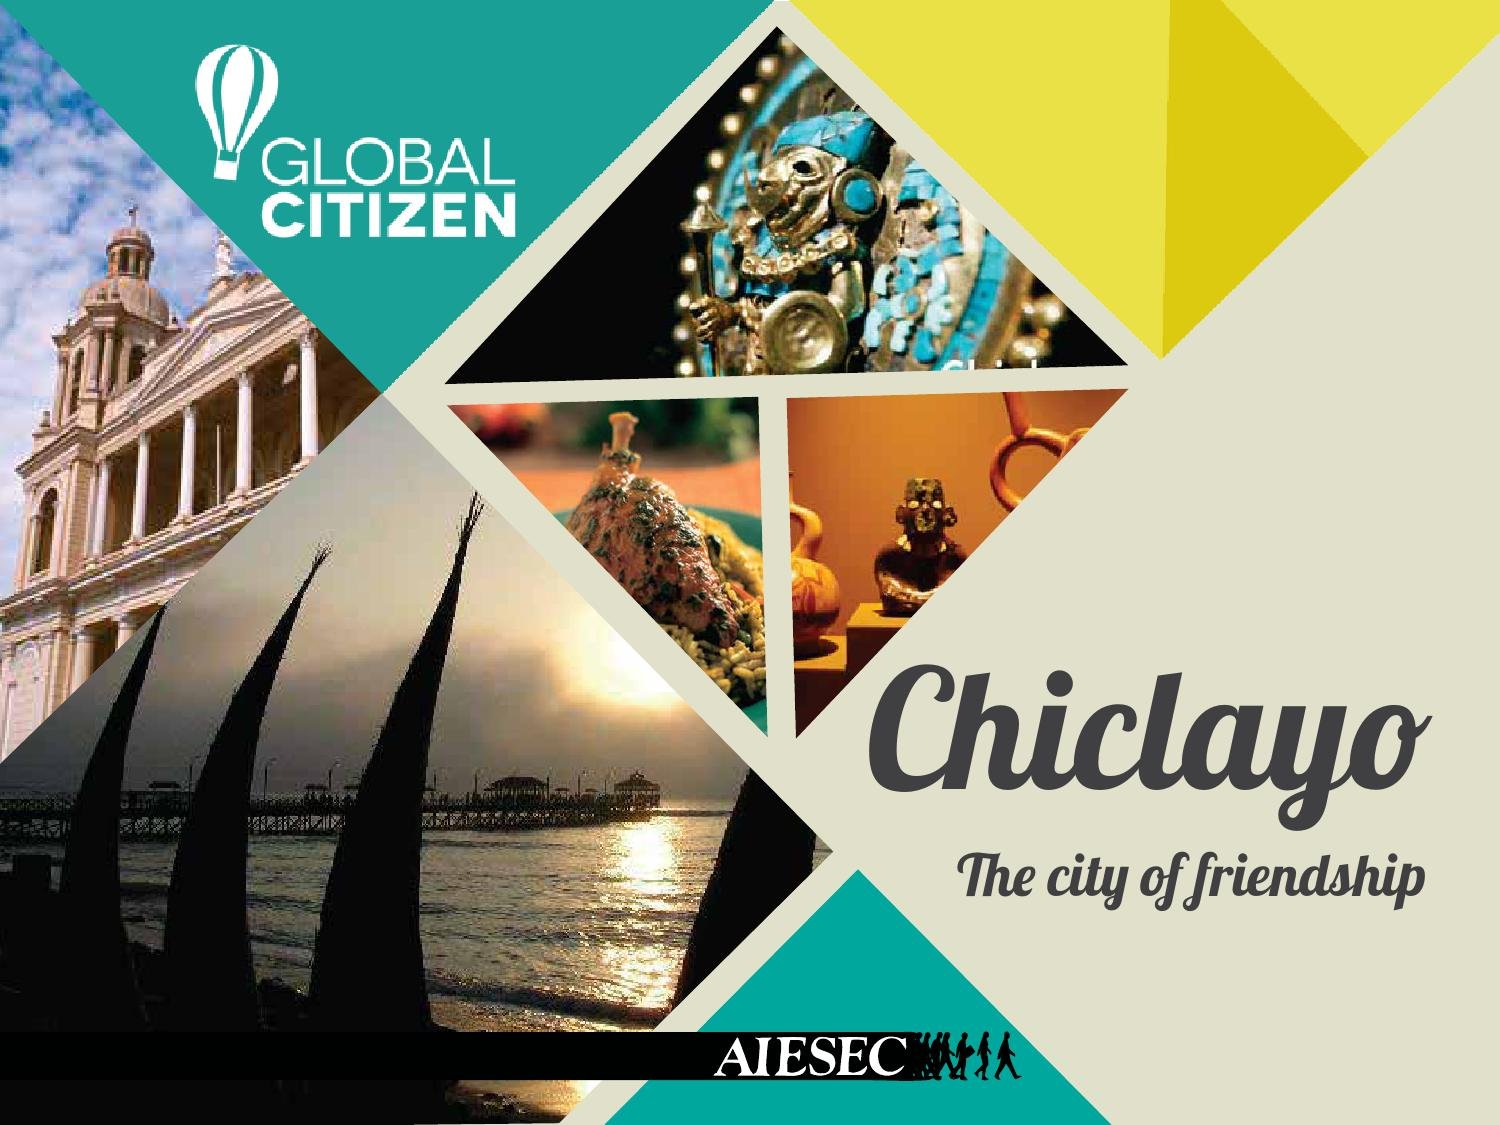 Aiesec Hannover aiesec chiclayo booklet igcdpelena yulliana carrasco